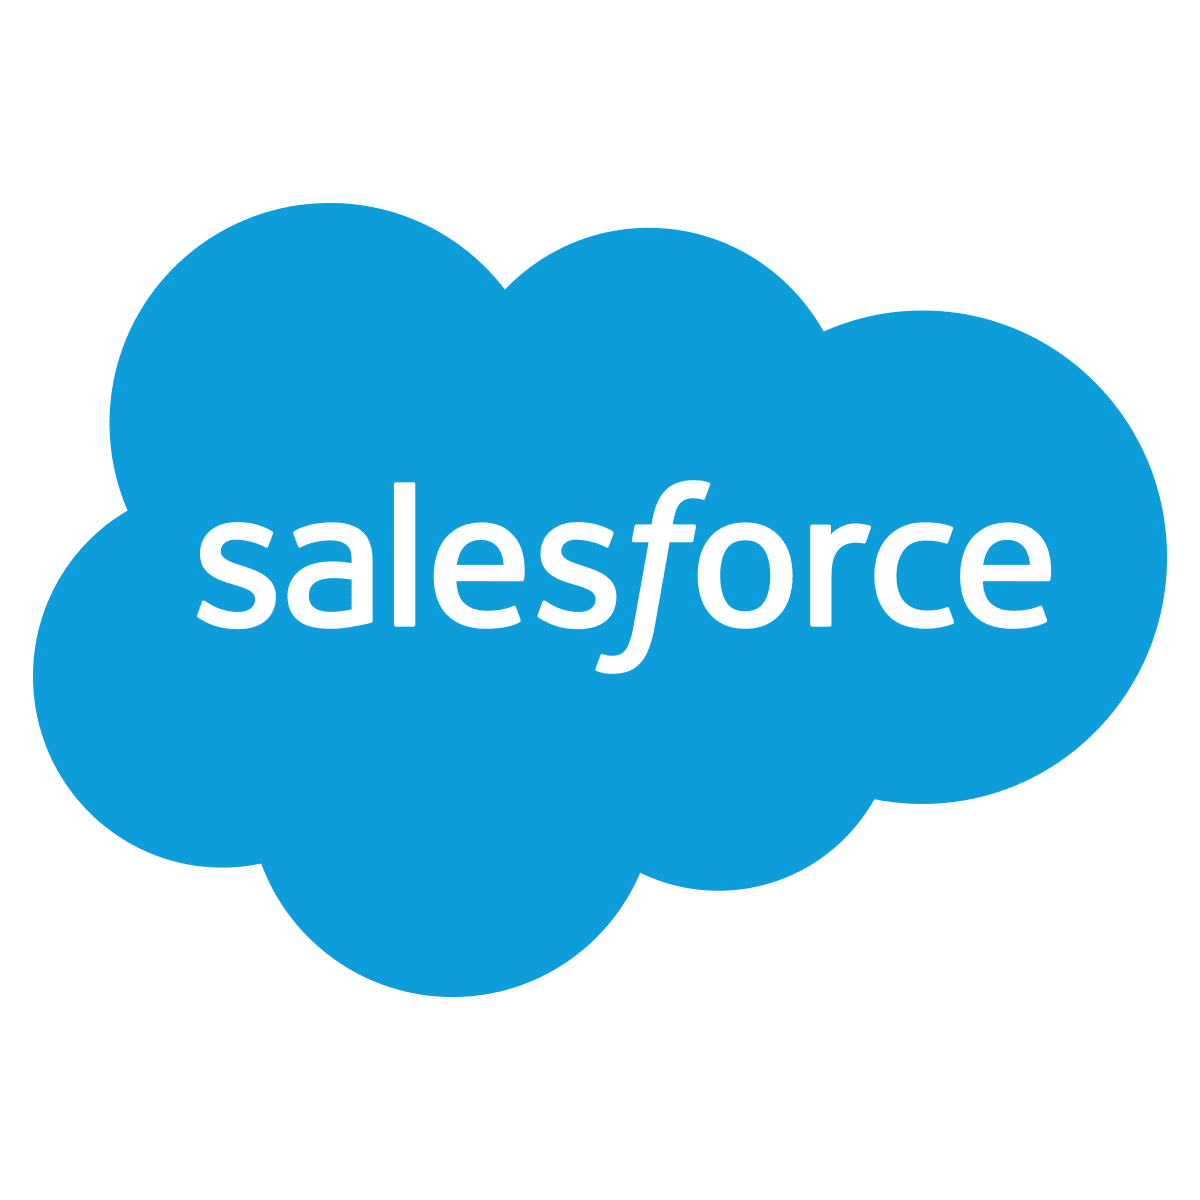 Salesforce Essentials is the World's #1 CRM reimagined for small business. Organize customer data, sell faster, and deliver better customer support for up to 10 users — for just $25 per user per month.